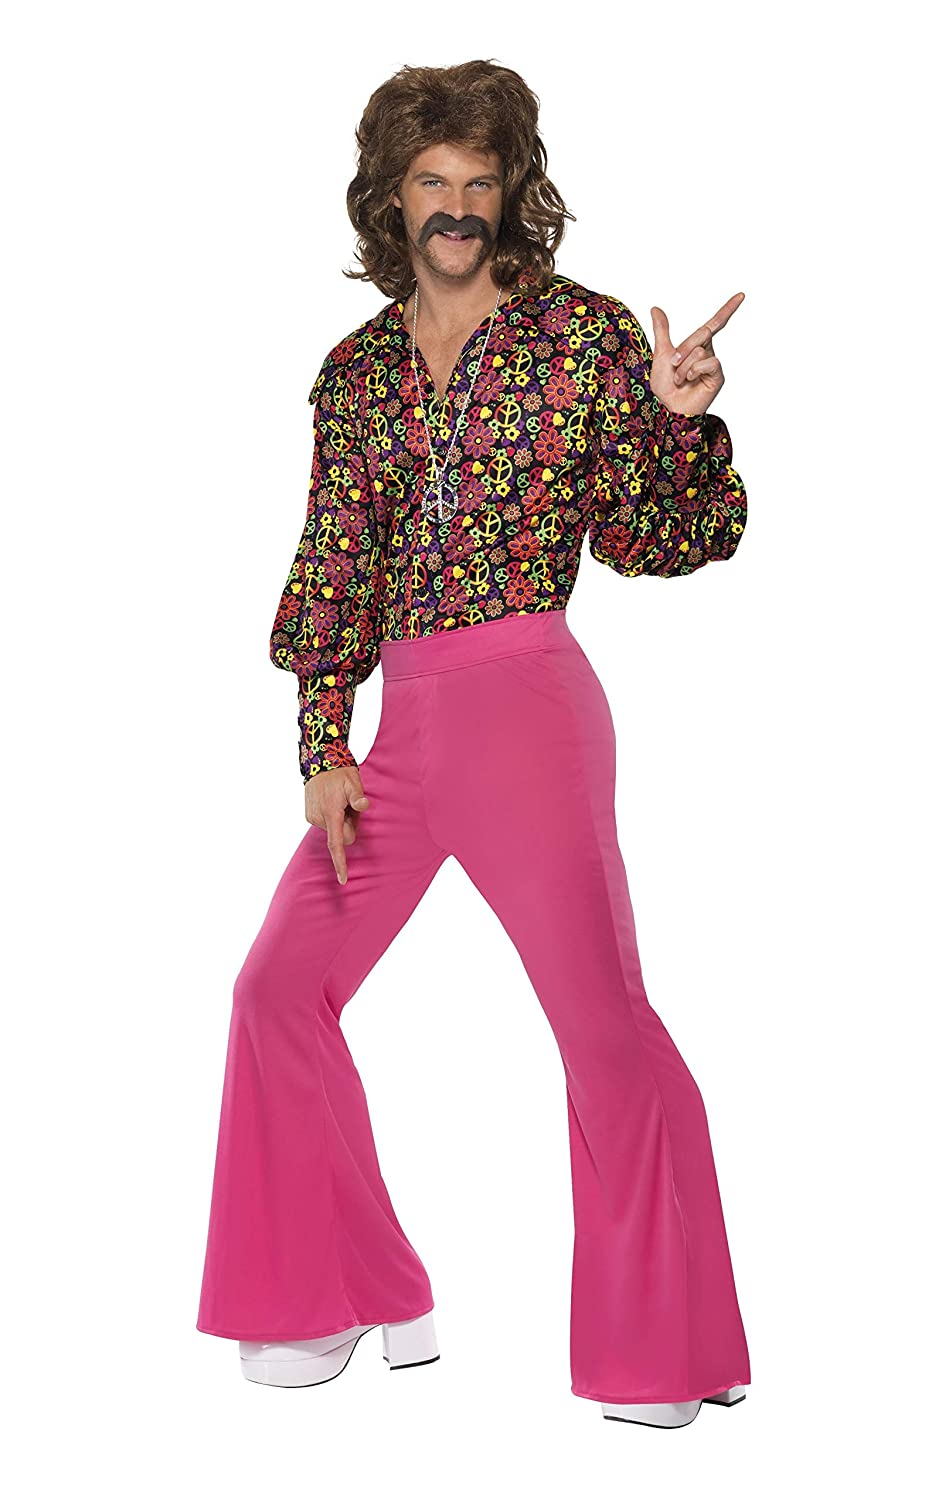 70s Costumes: Disco Costumes, Hippie Outfits 1960S Cnd Slack Suit Fancy Dress Costume Mens (1960S) $40.79 AT vintagedancer.com